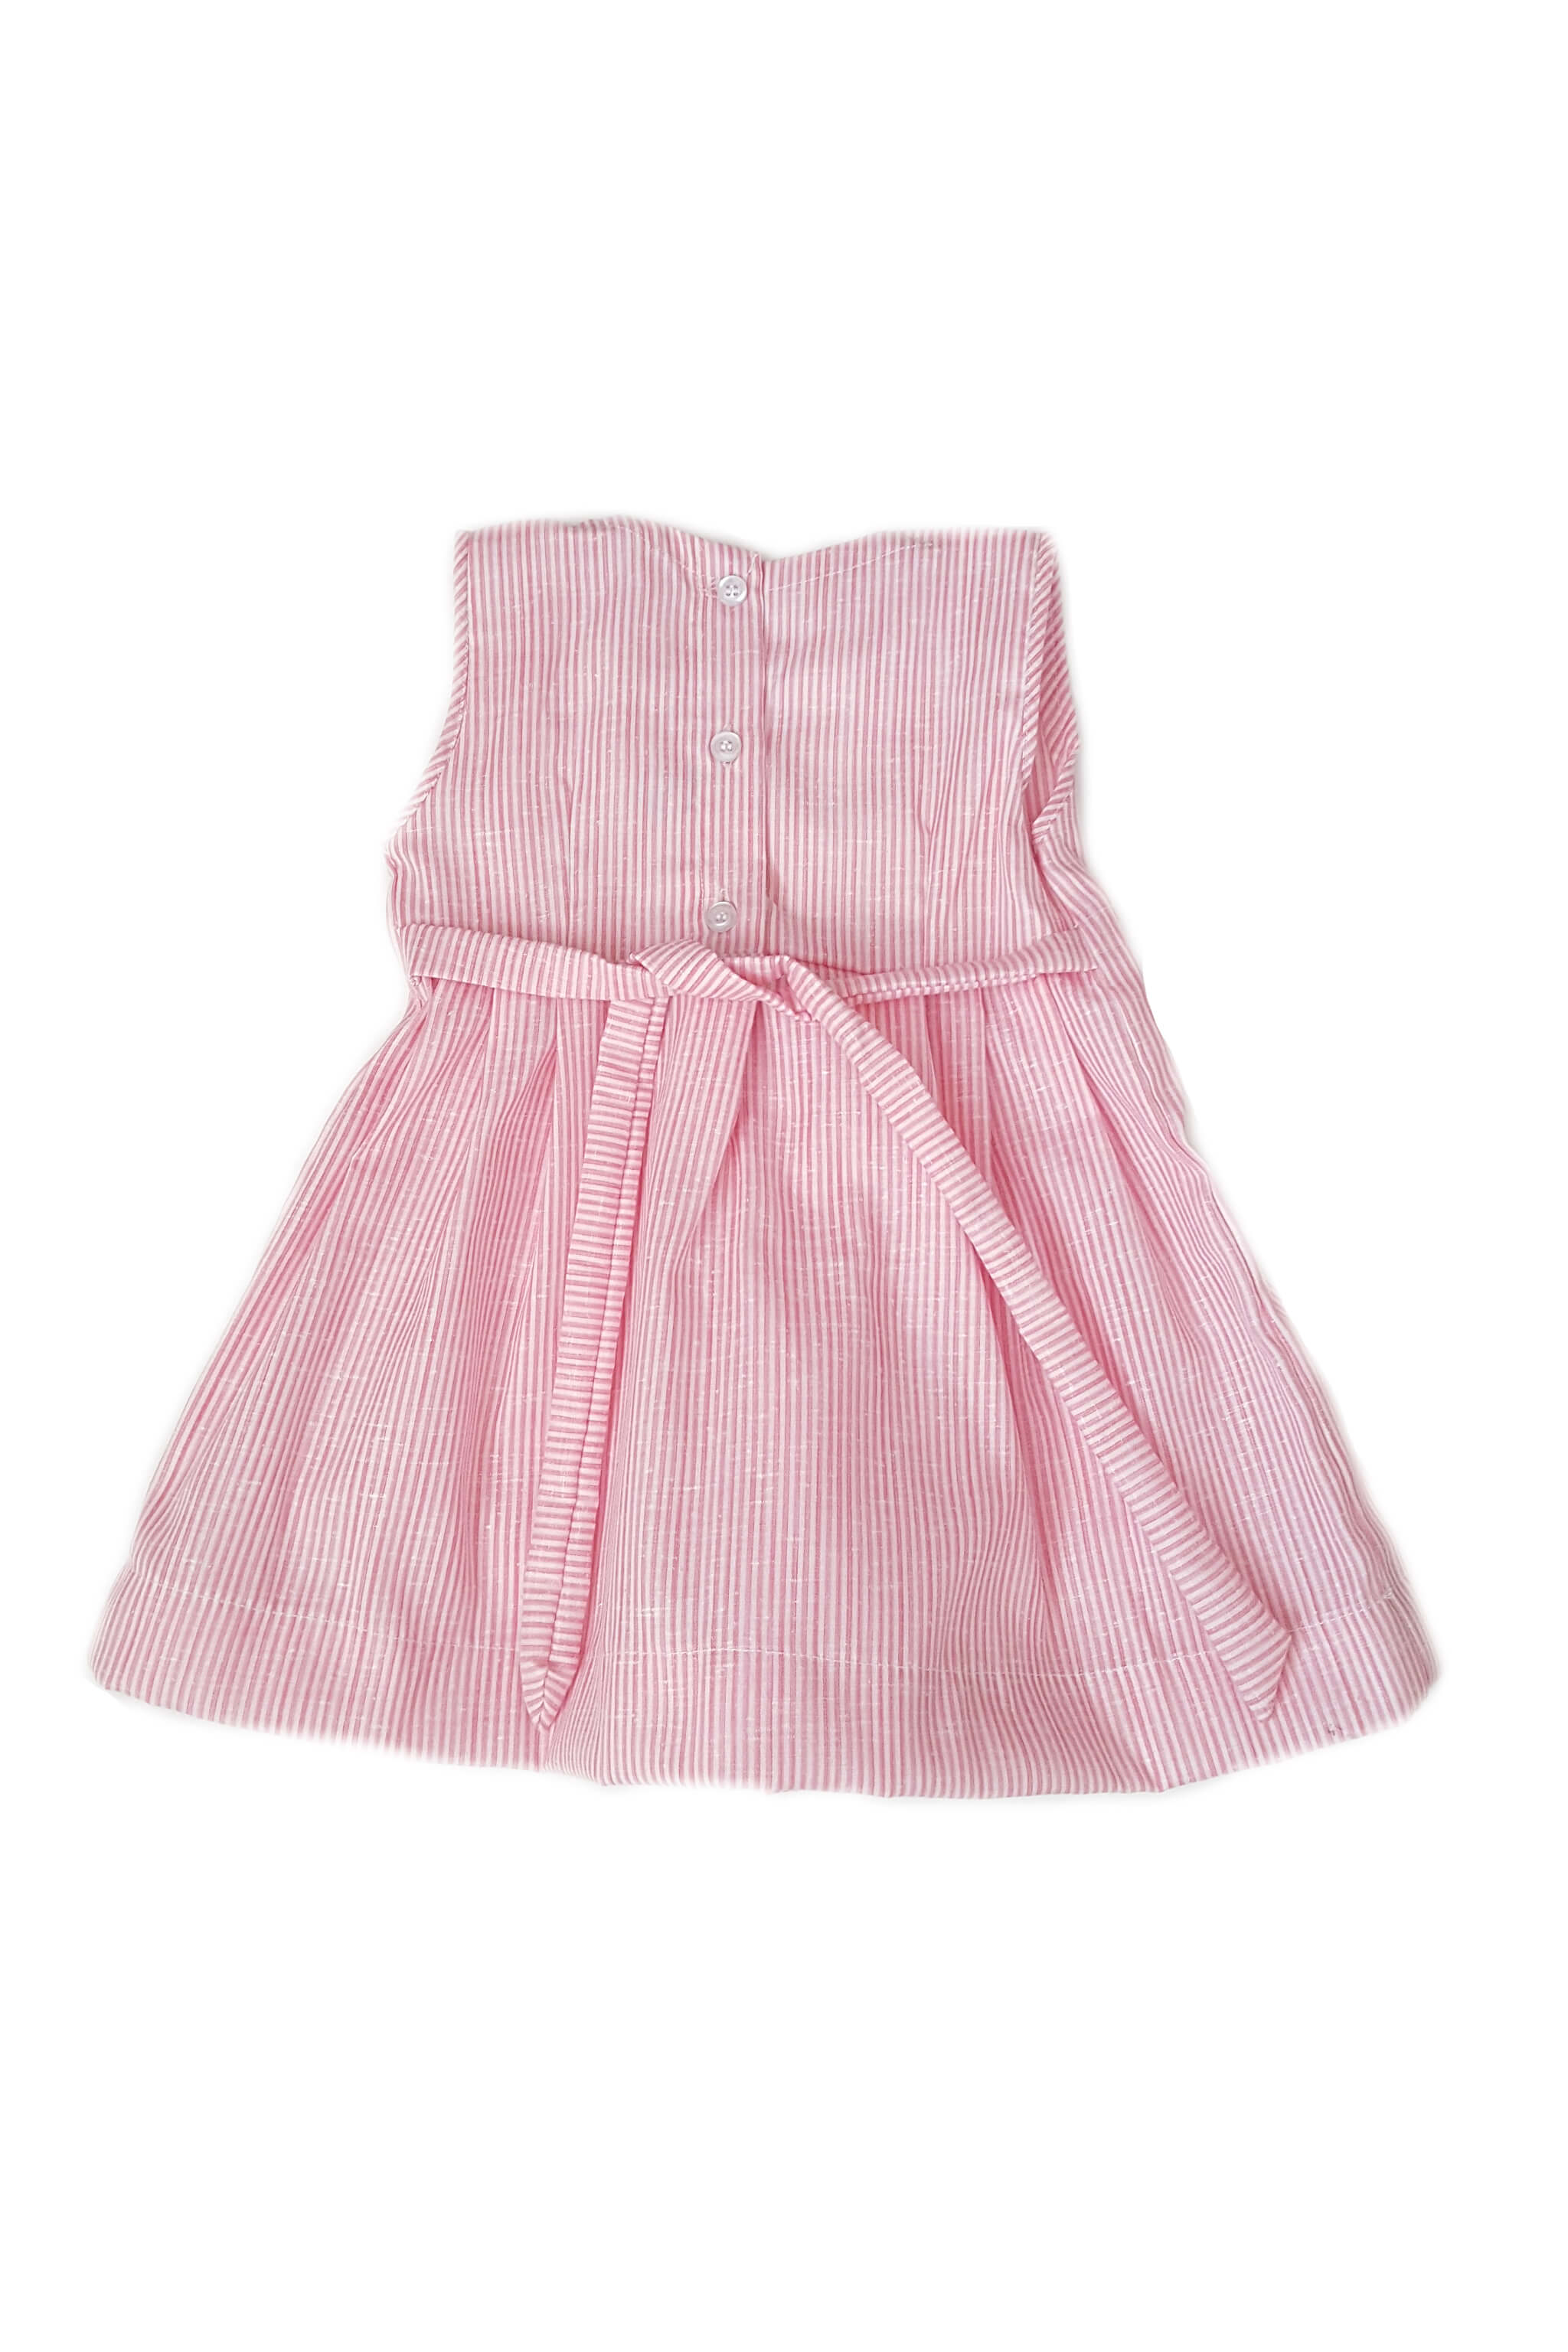 Back of pink-striped dress with square neckline and white bodice with smocking with button back and sash to tie at waist for baby girls